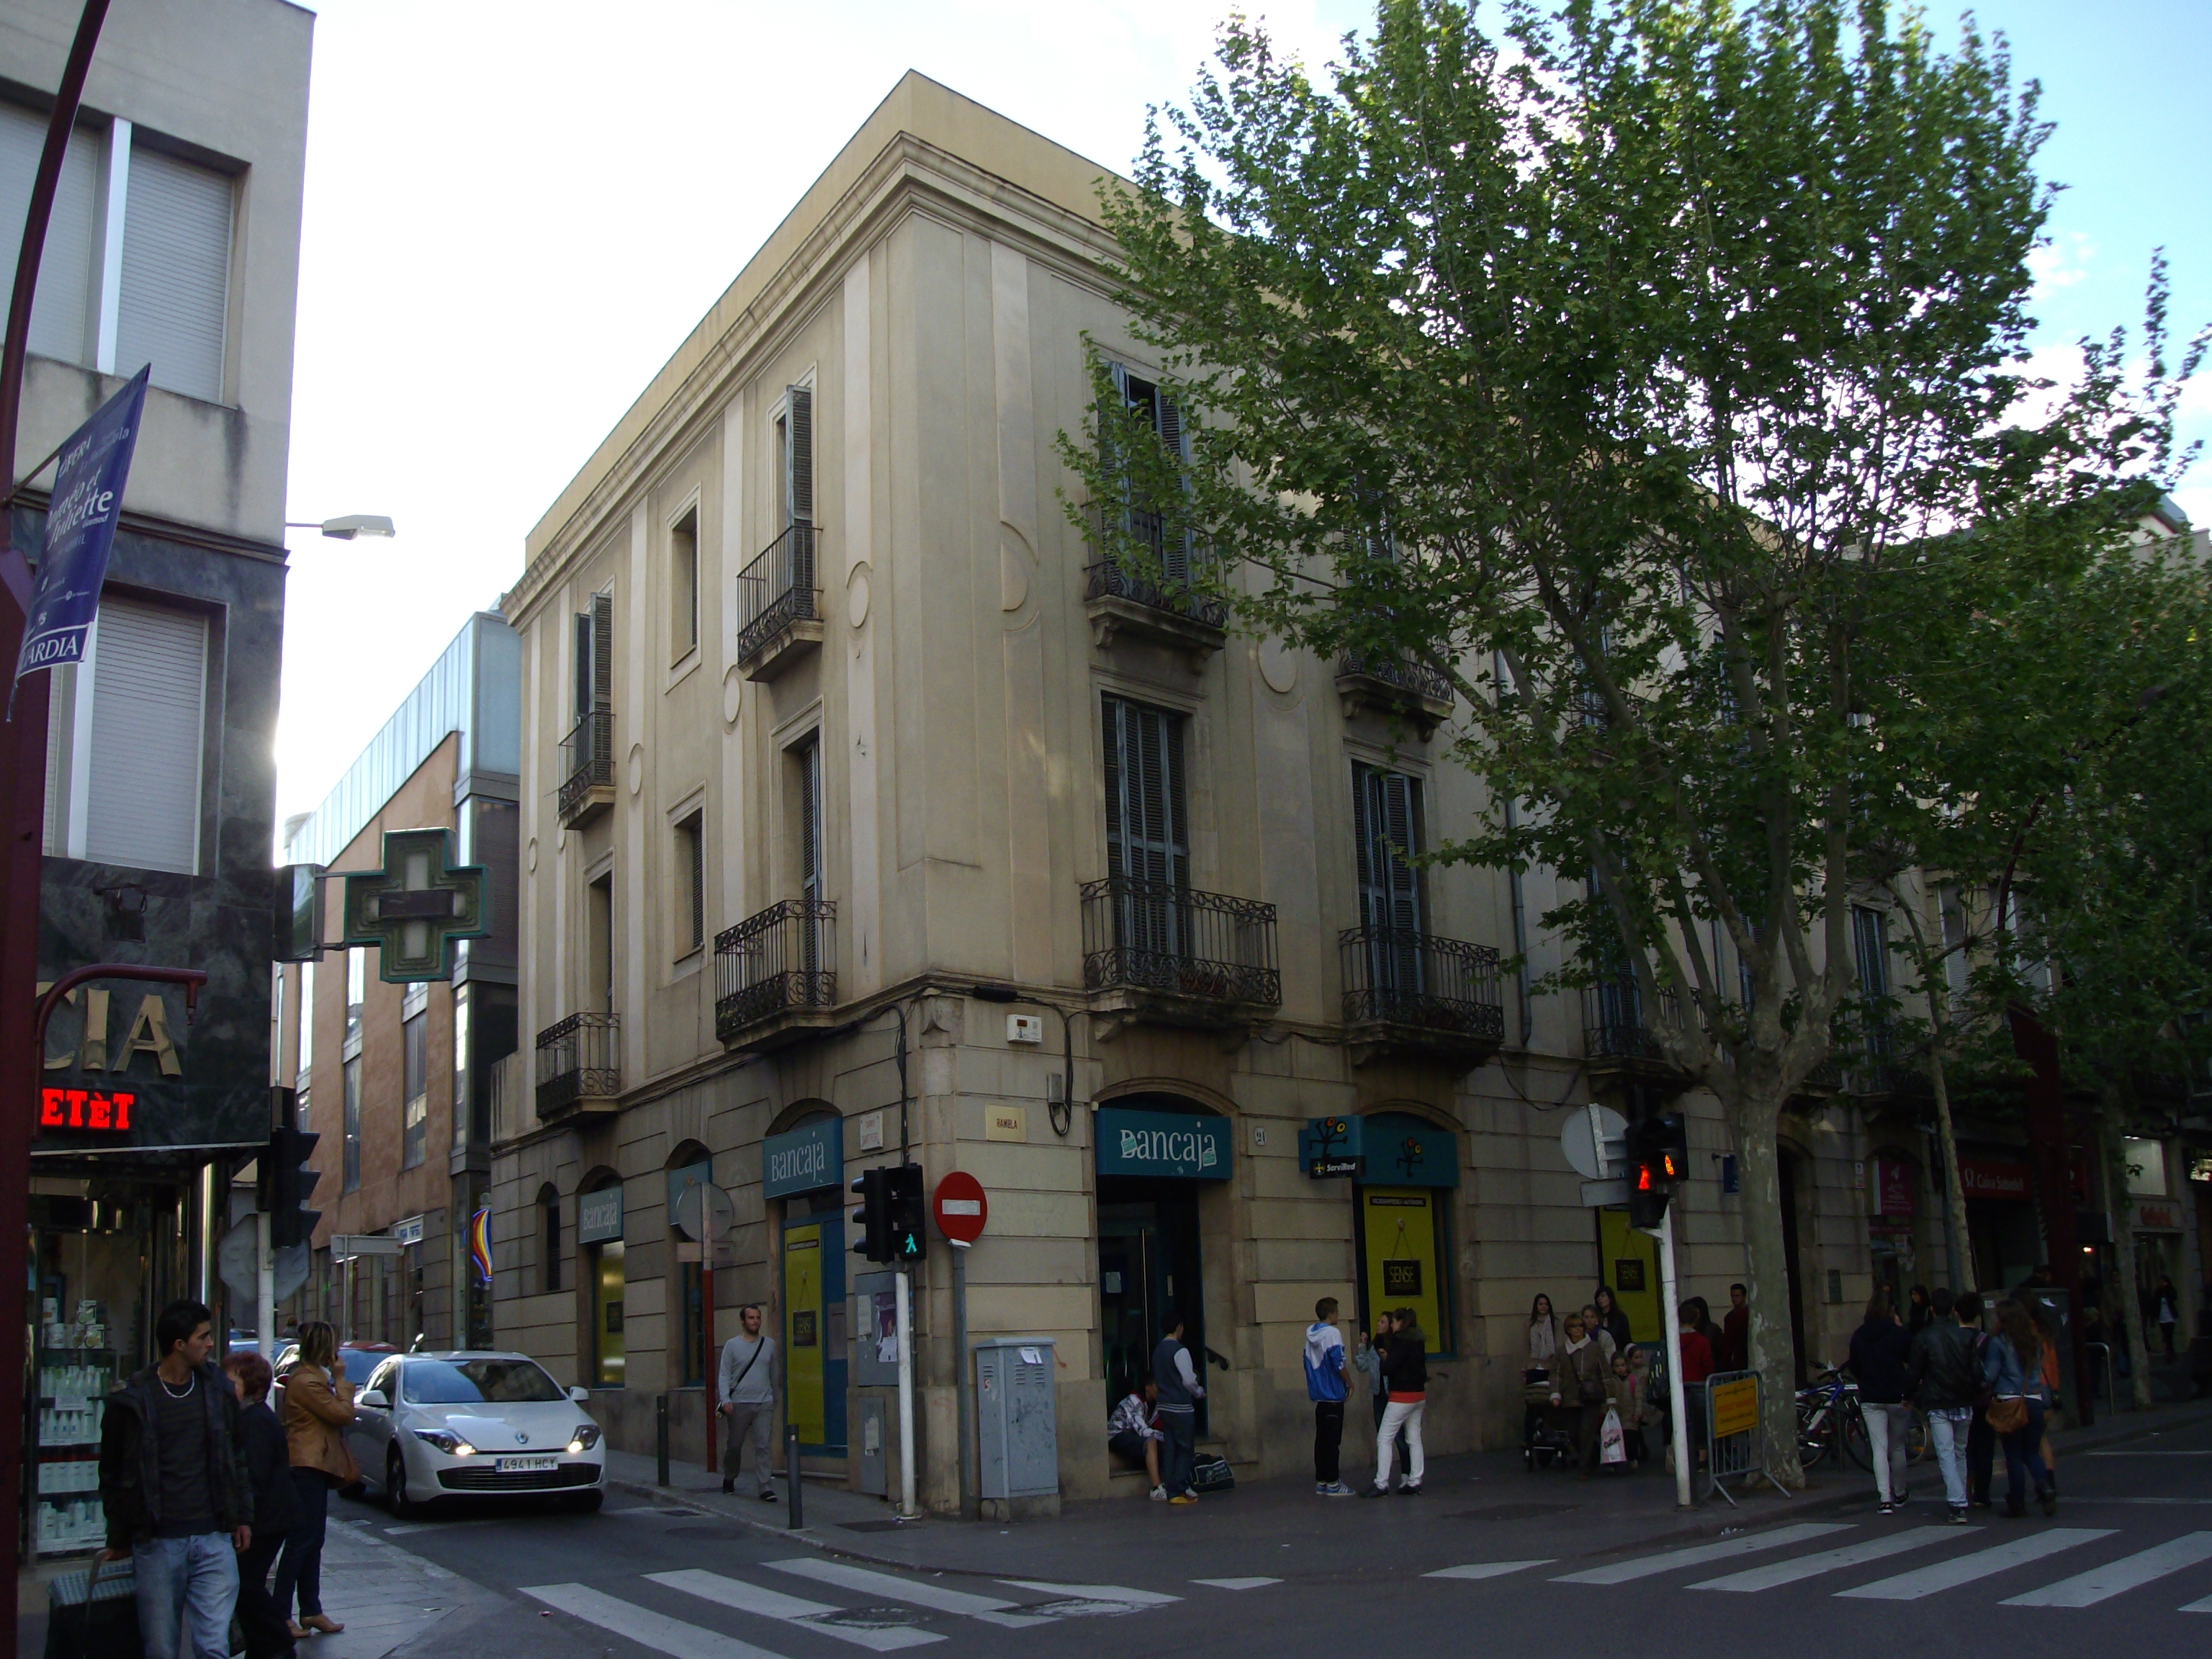 Sabadell Spain  City new picture : Description Hotel España, Sabadell